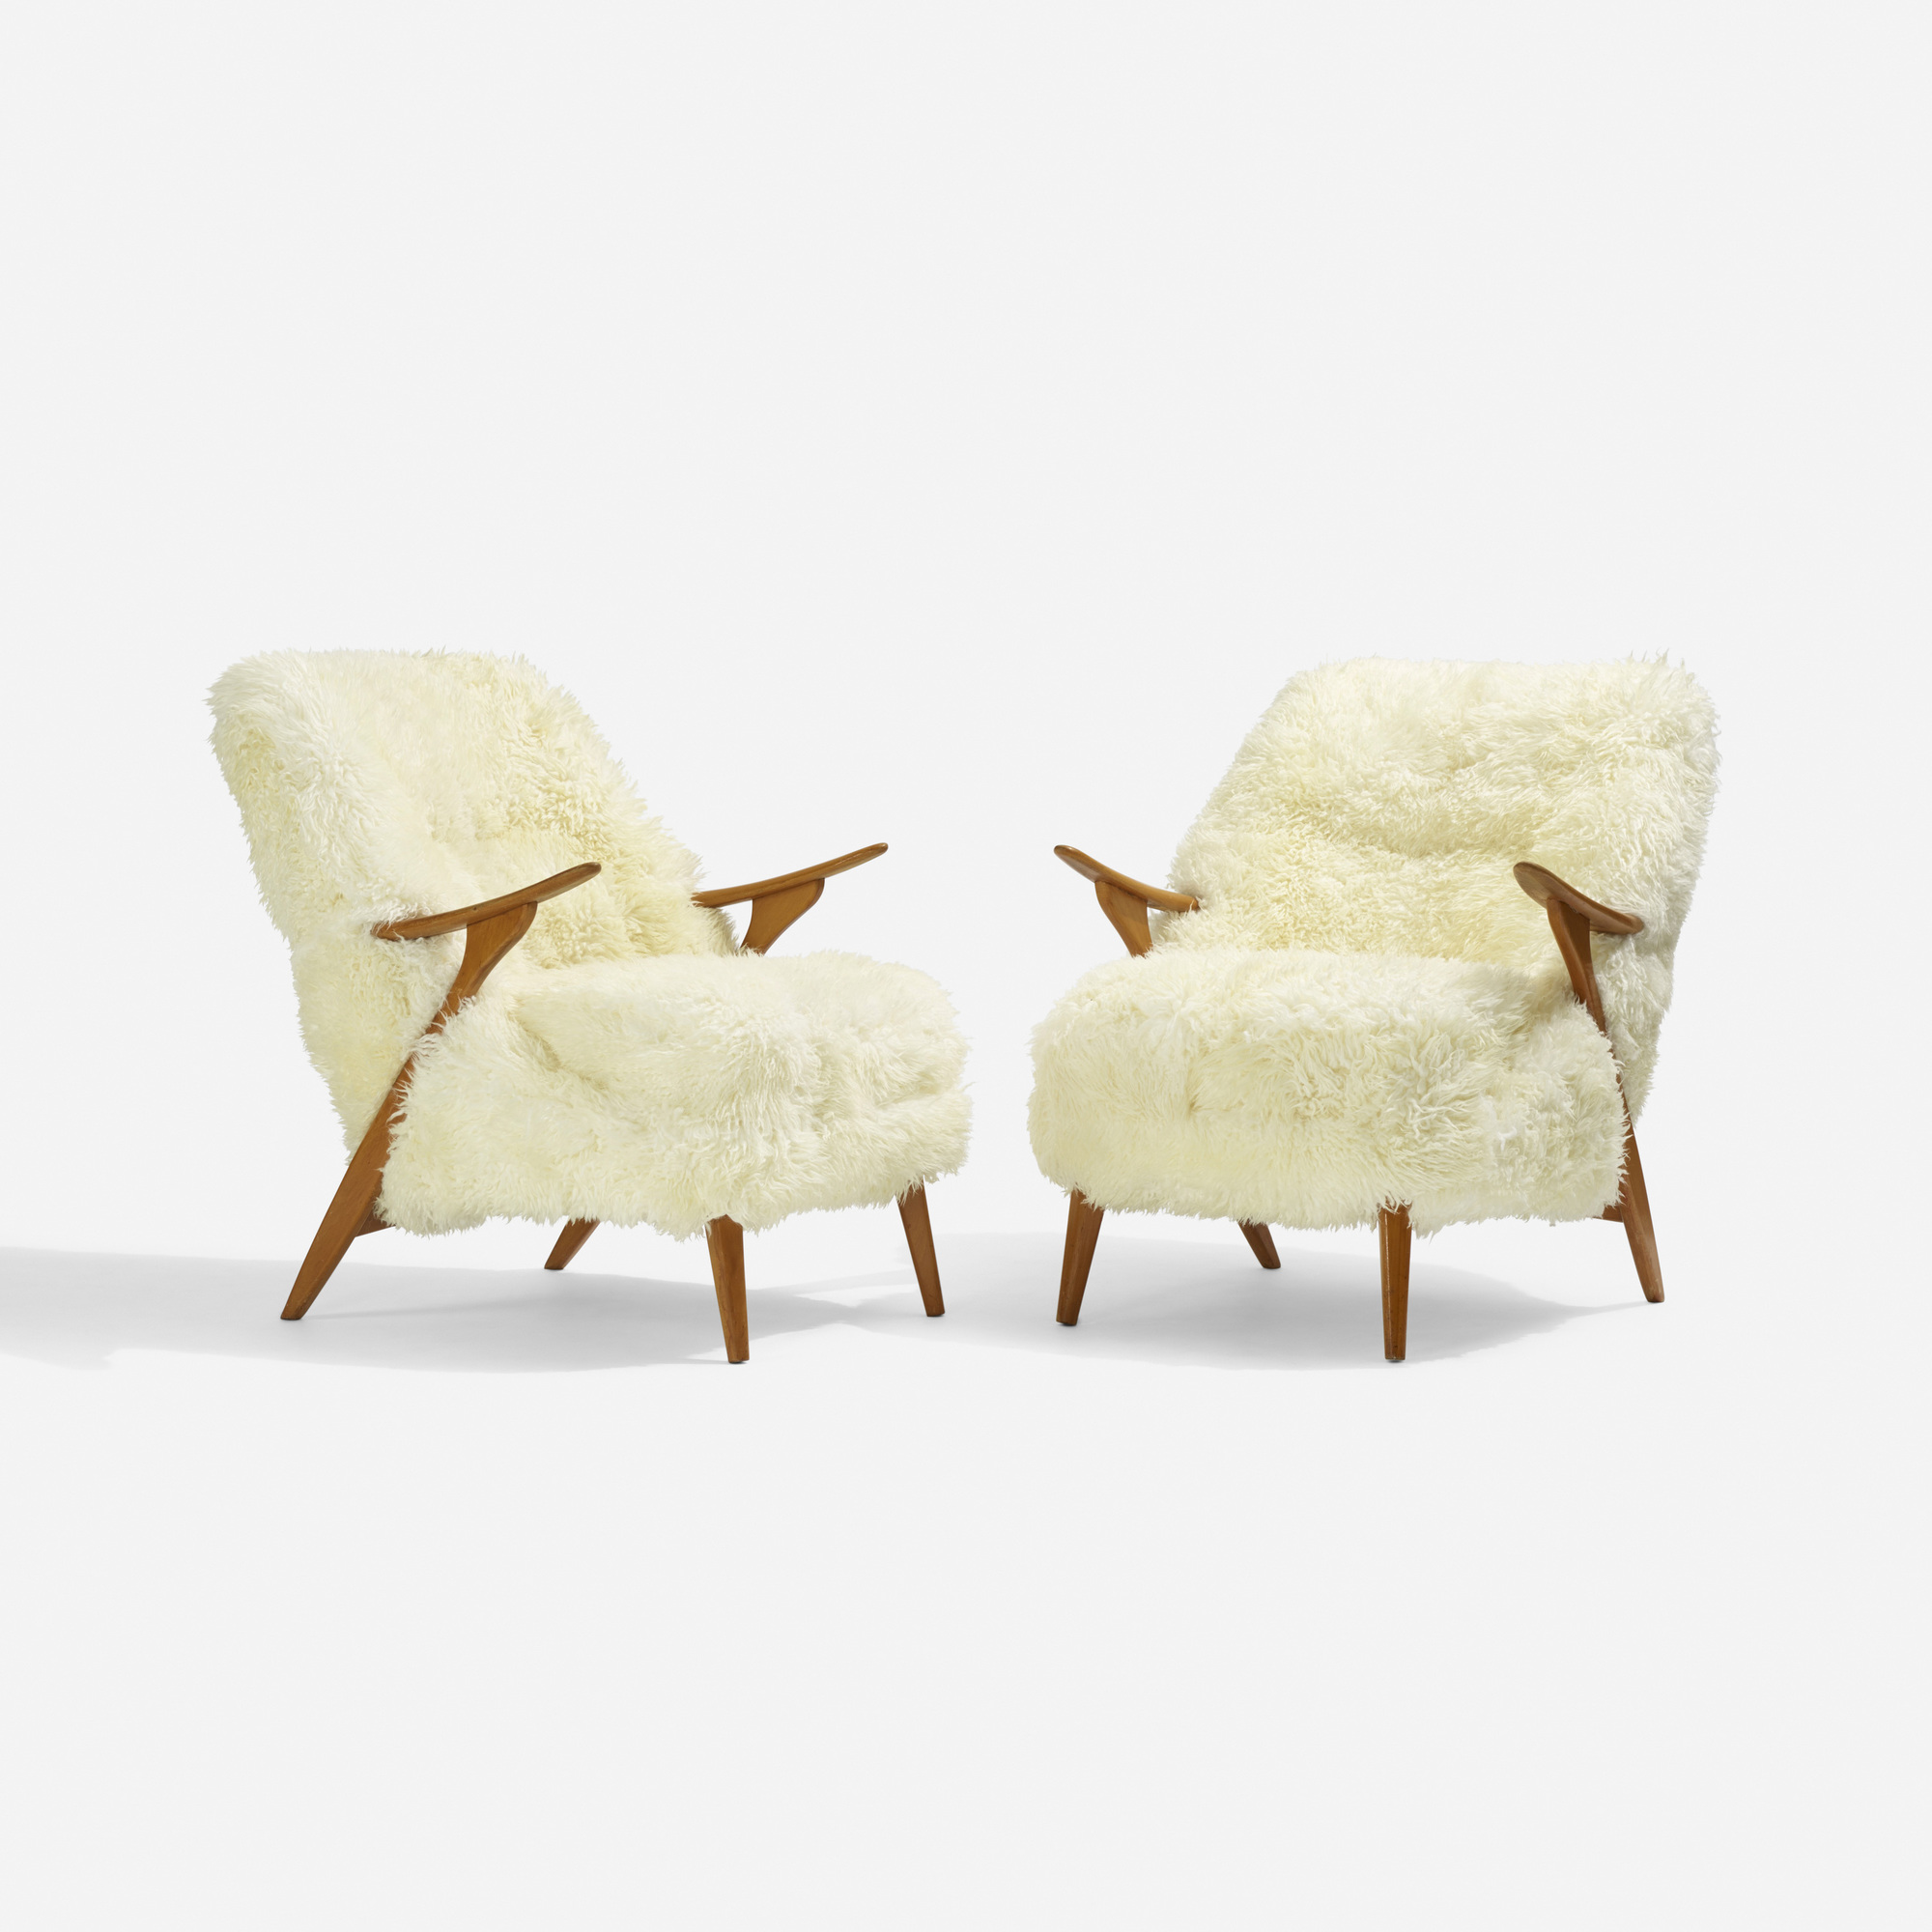 121: Svante Skogh / armchairs, pair (2 of 3)